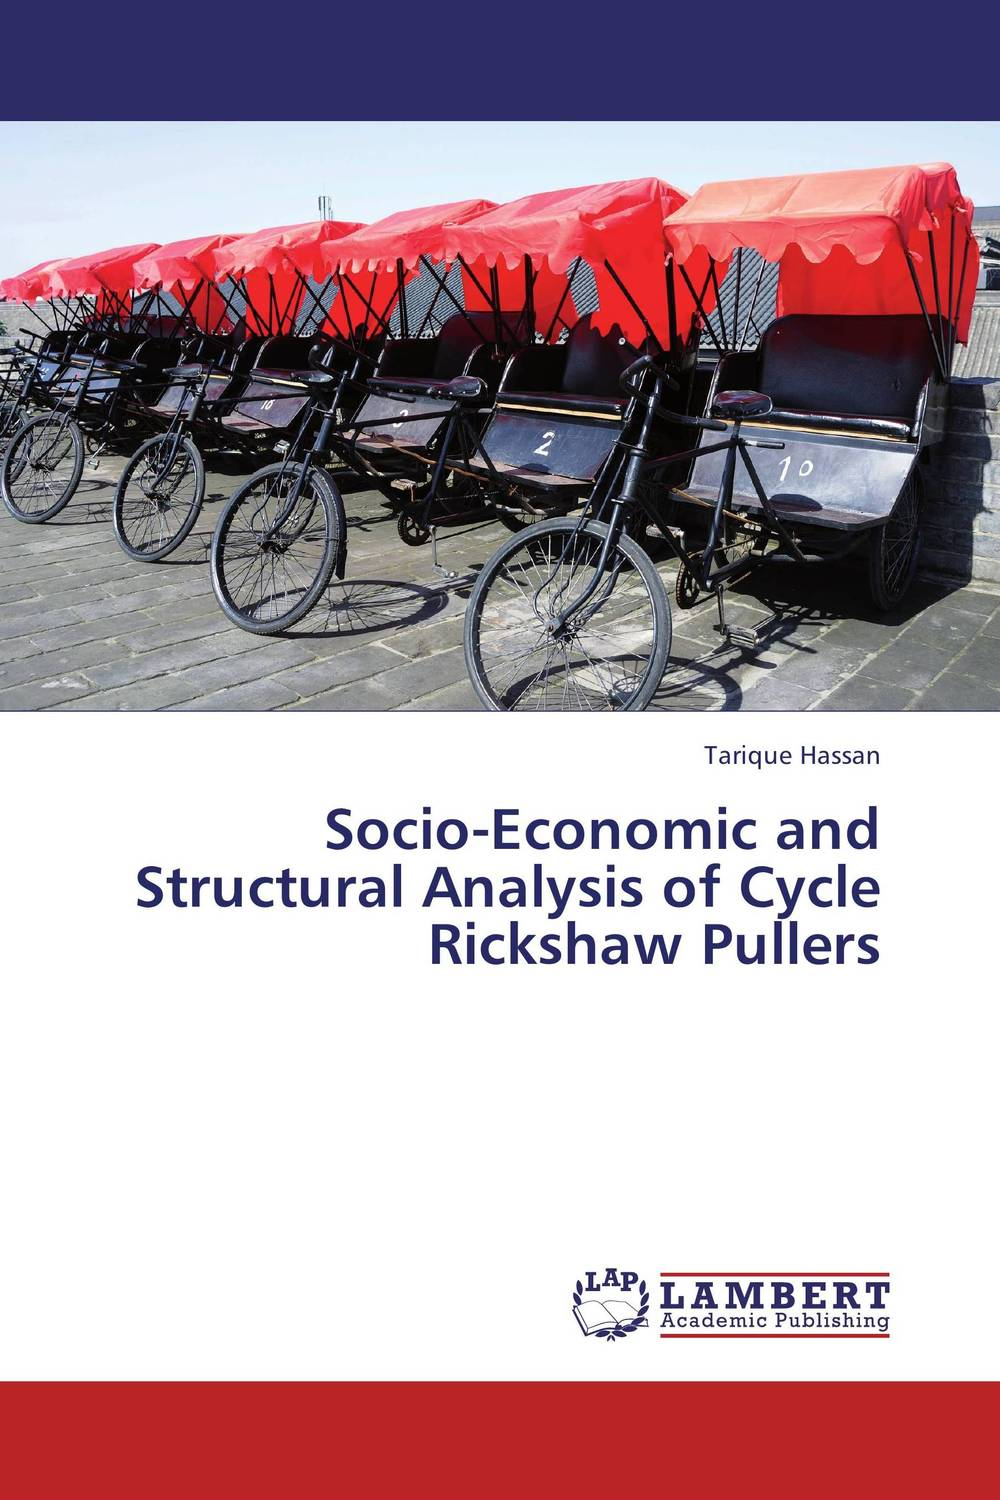 Socio-Economic and Structural Analysis of Cycle Rickshaw Pullers analysis fate and removal of pharmaceuticals in the water cycle 50